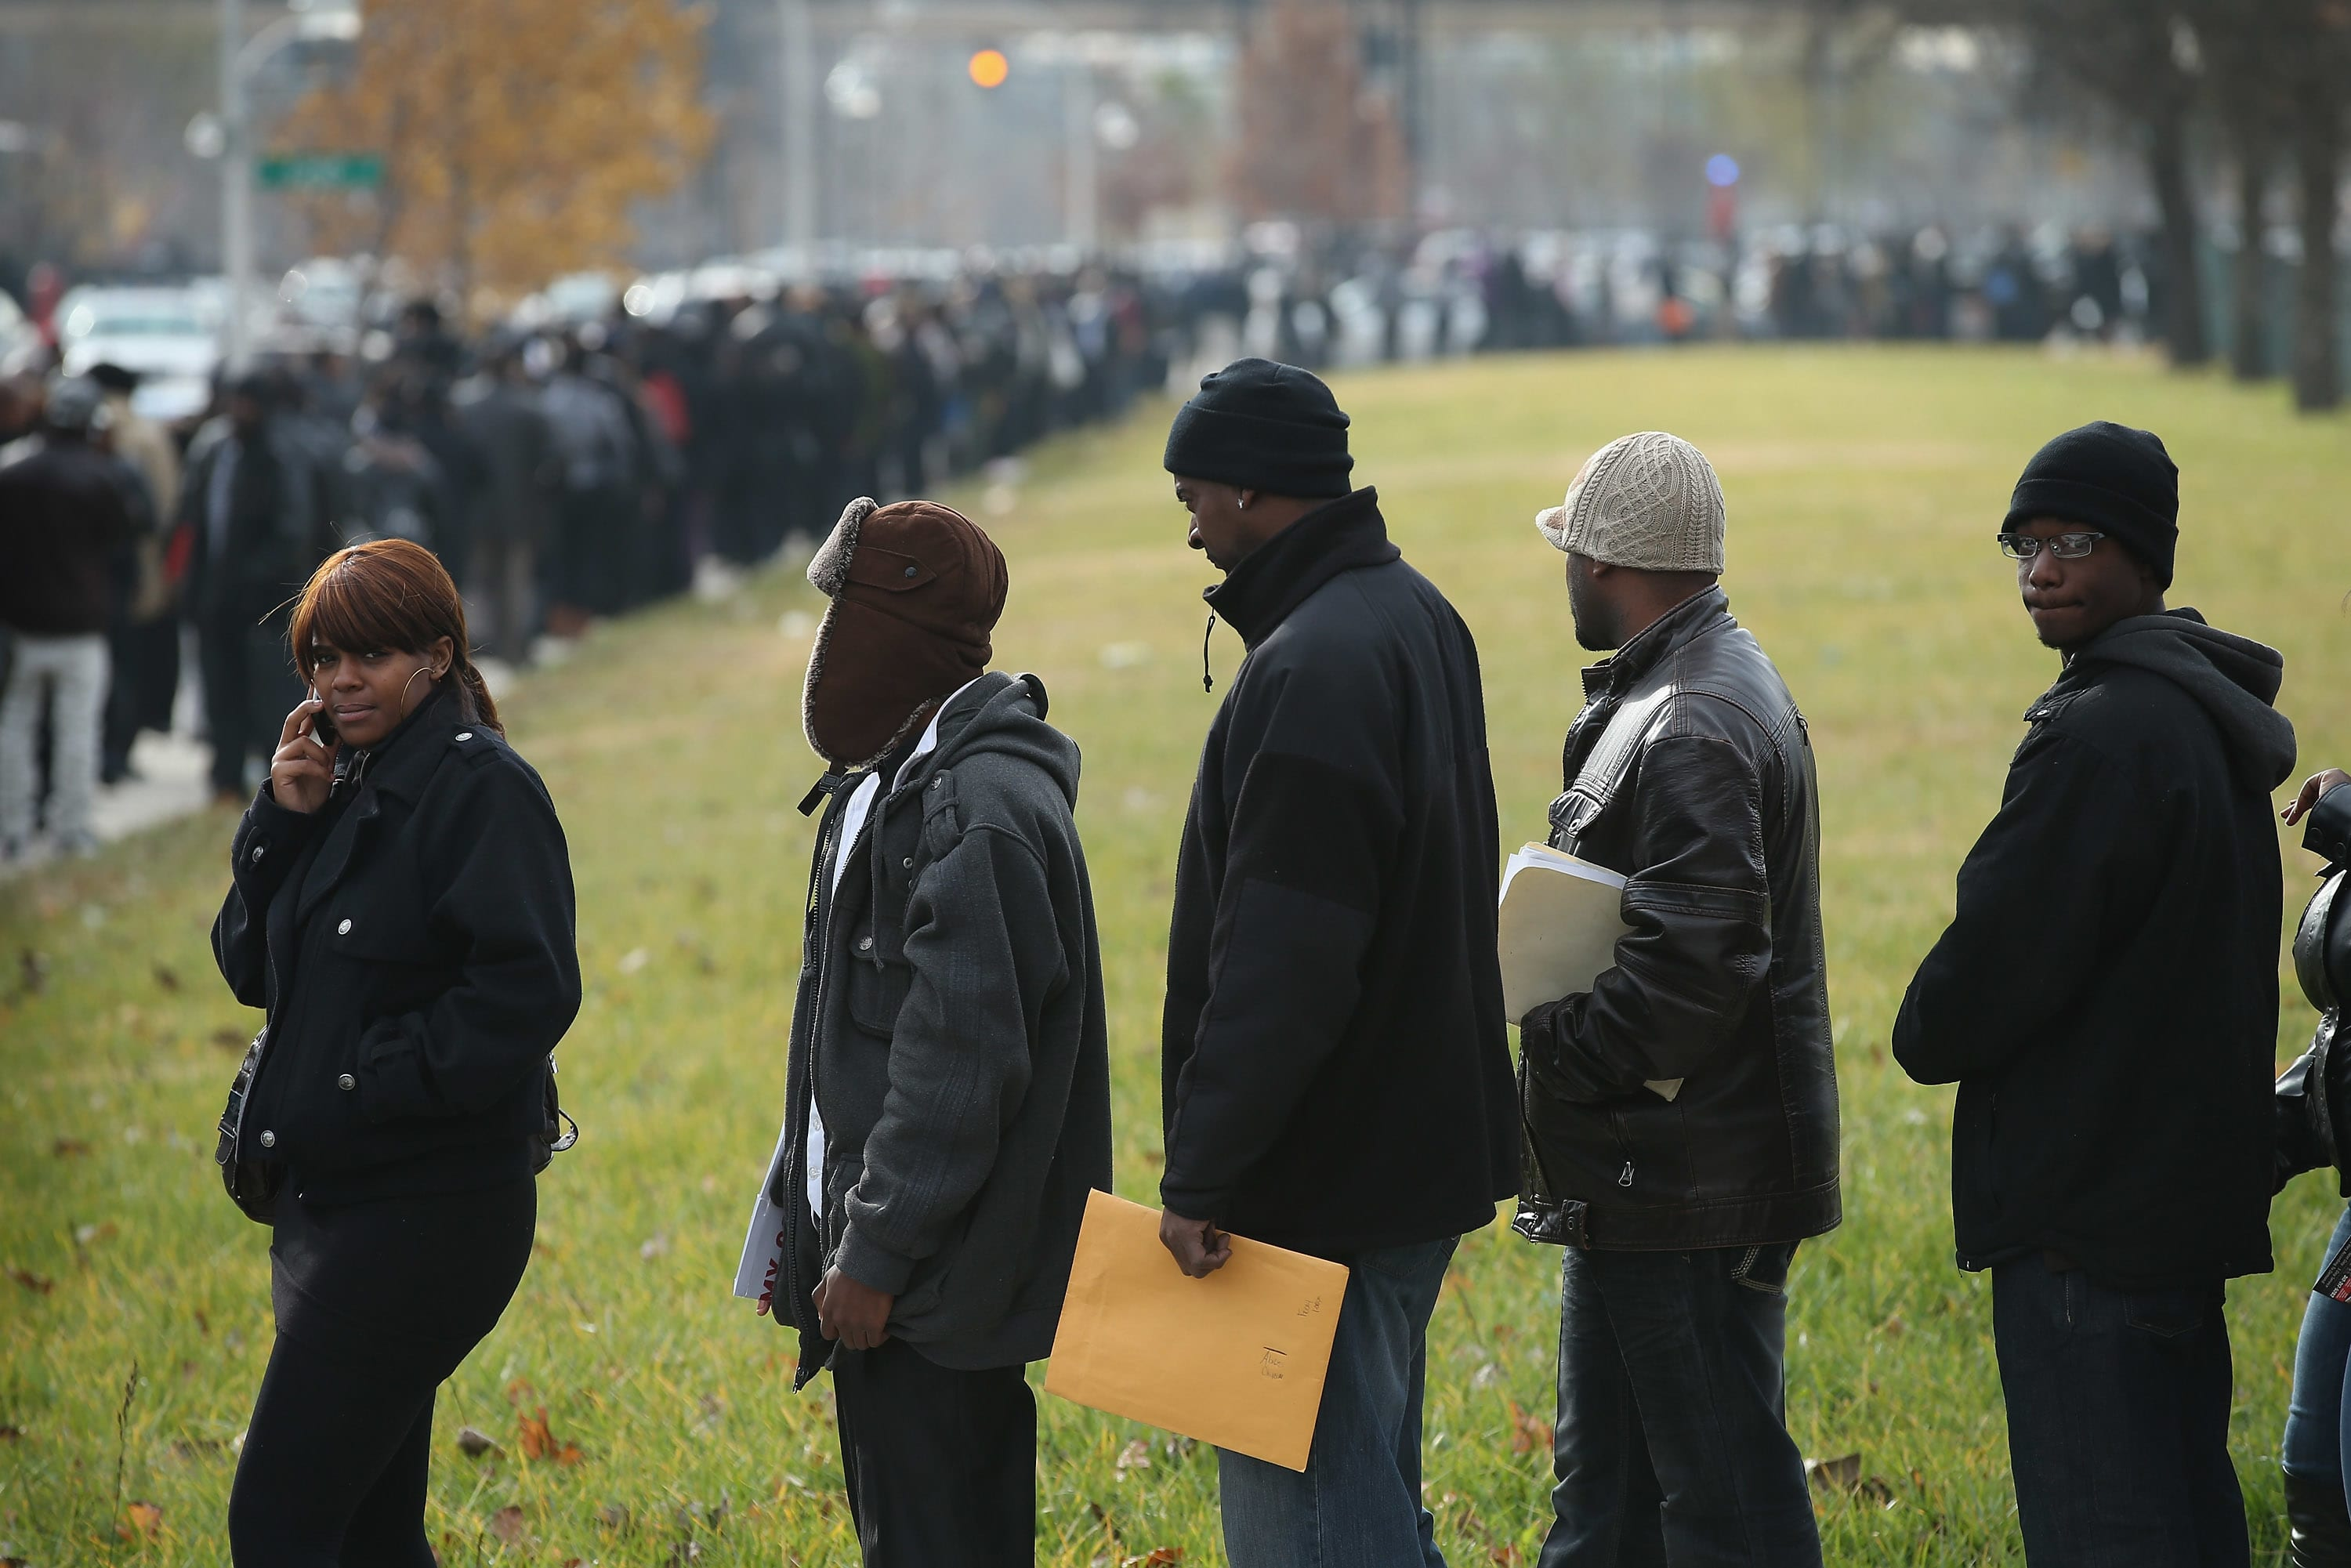 Job seekers wait in line at Kennedy-King College to attend a job fair hosted by the city of Chicago in Chicago, Illinois. (File photo).